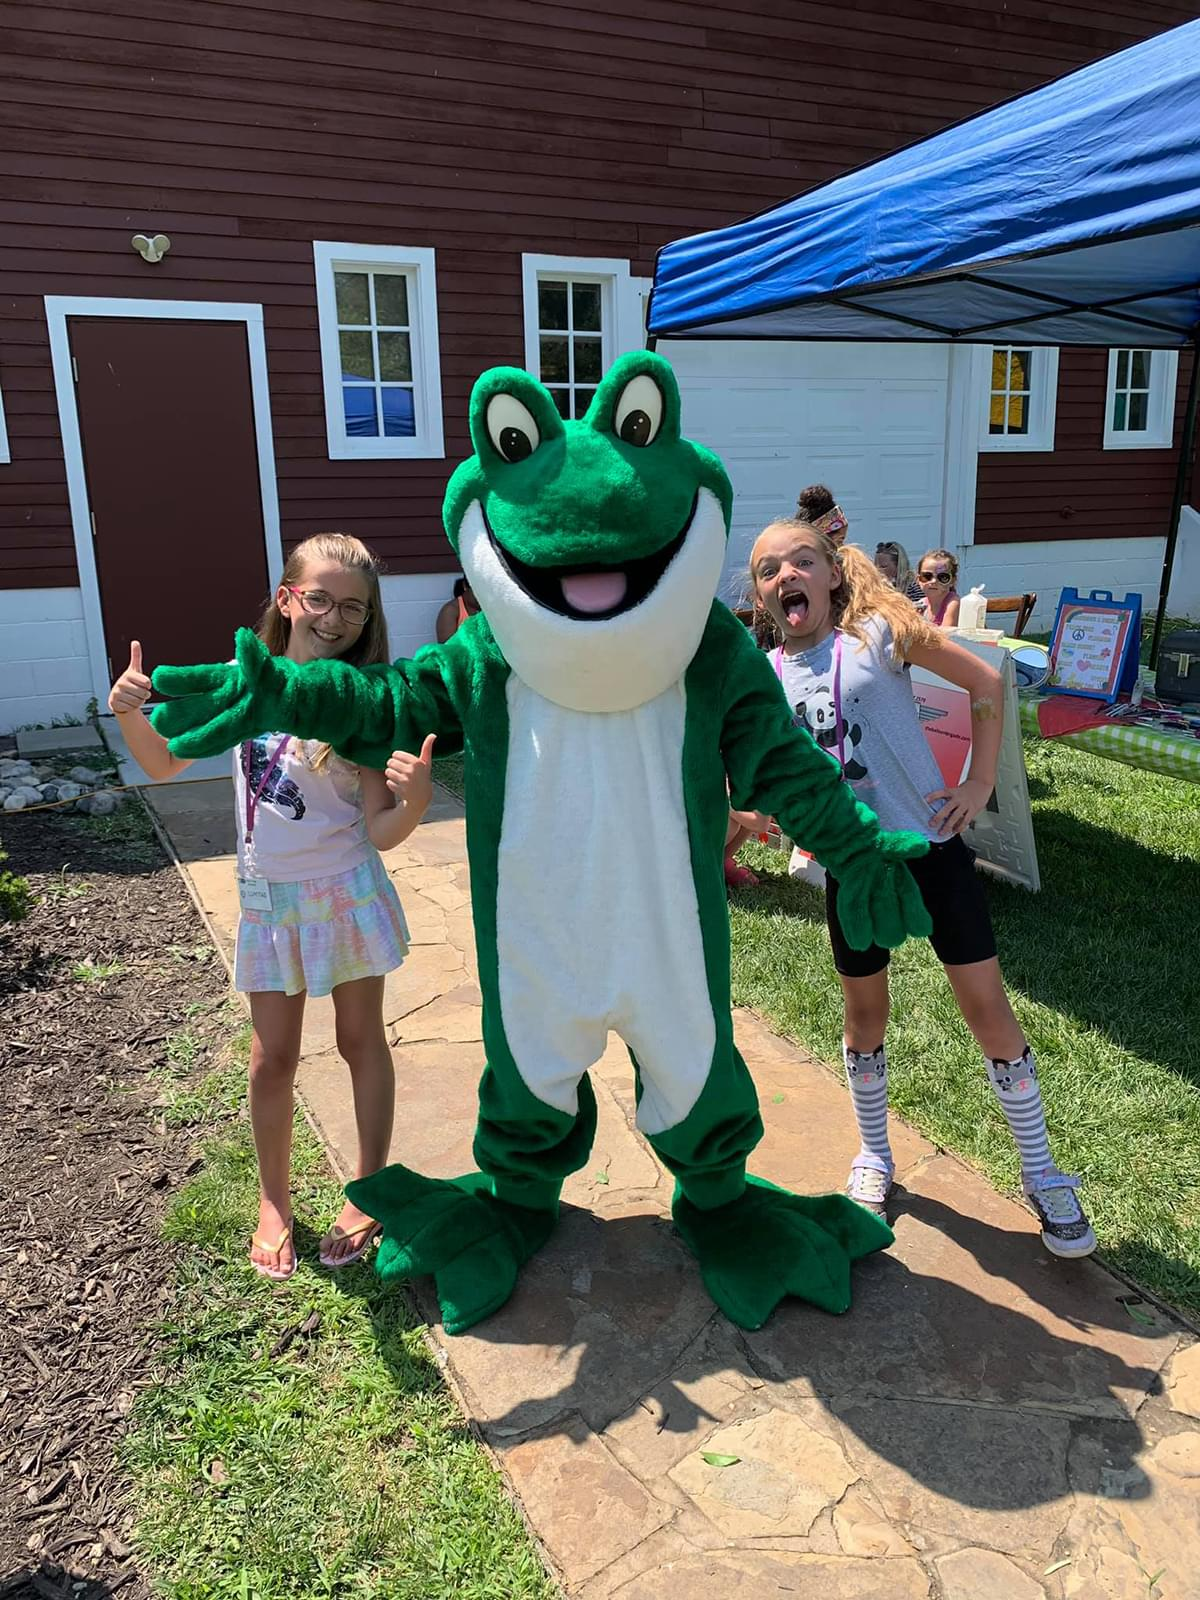 Kids with the Bags of Fun Frog Mascot